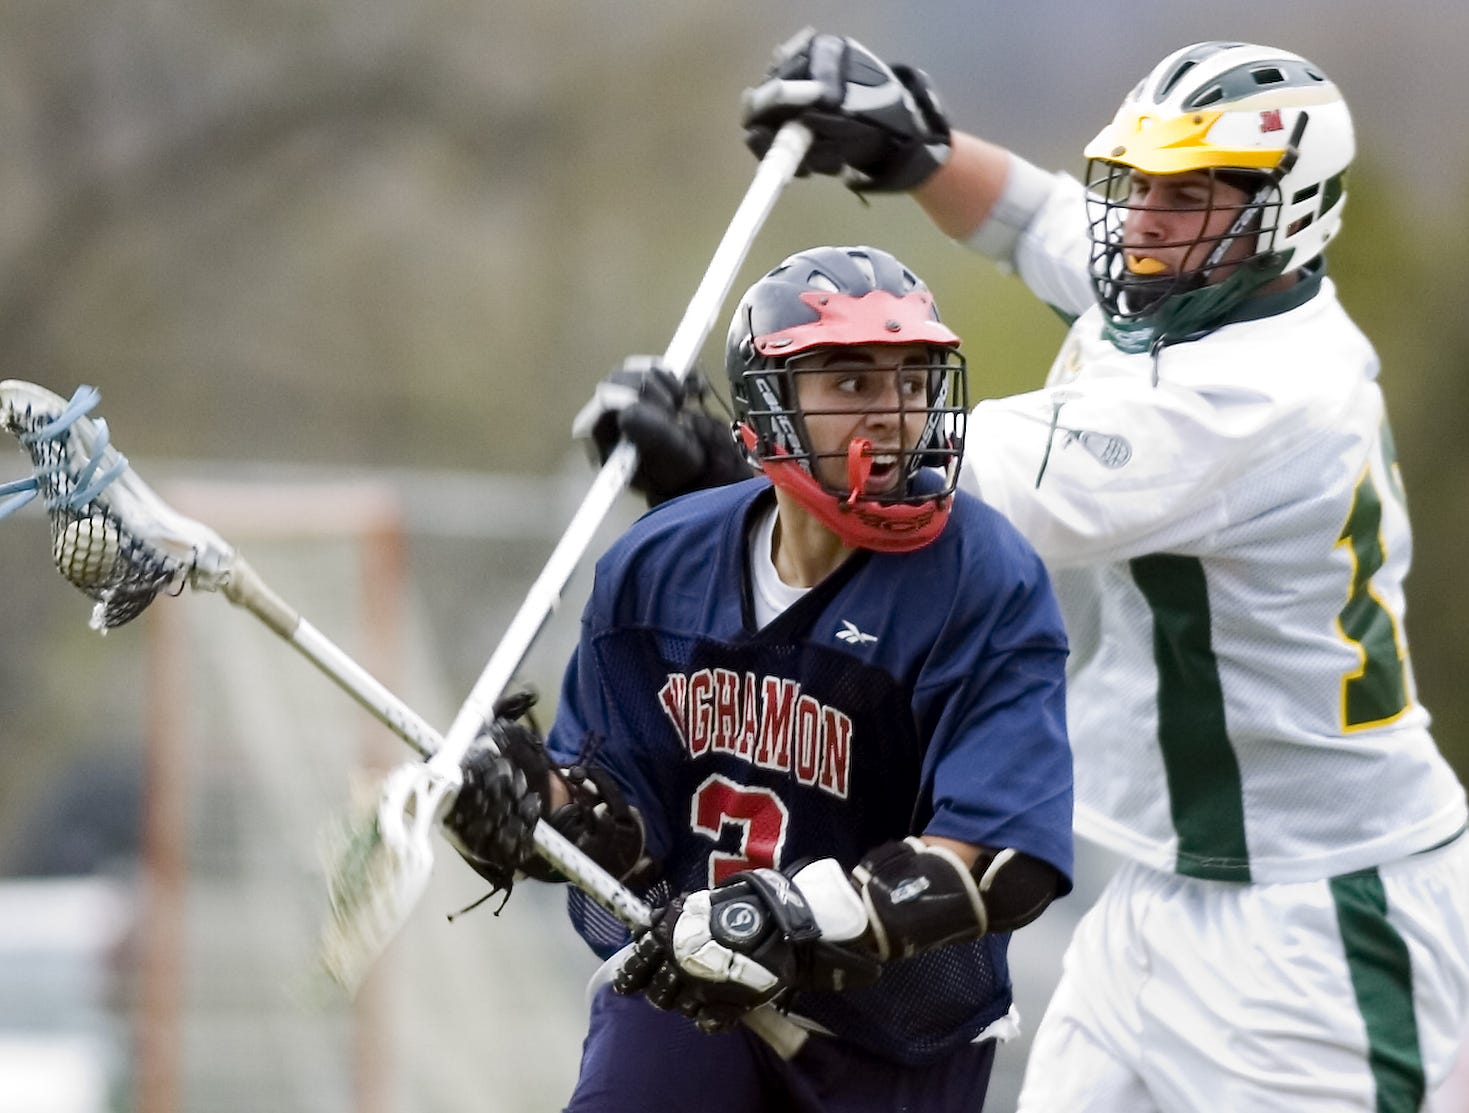 2007: Binghamton High School's Cory Campon, left, is defended by Vestal High School's Jeff Battaglini in the second period of the Tuesday lacrosse game in Vestal.